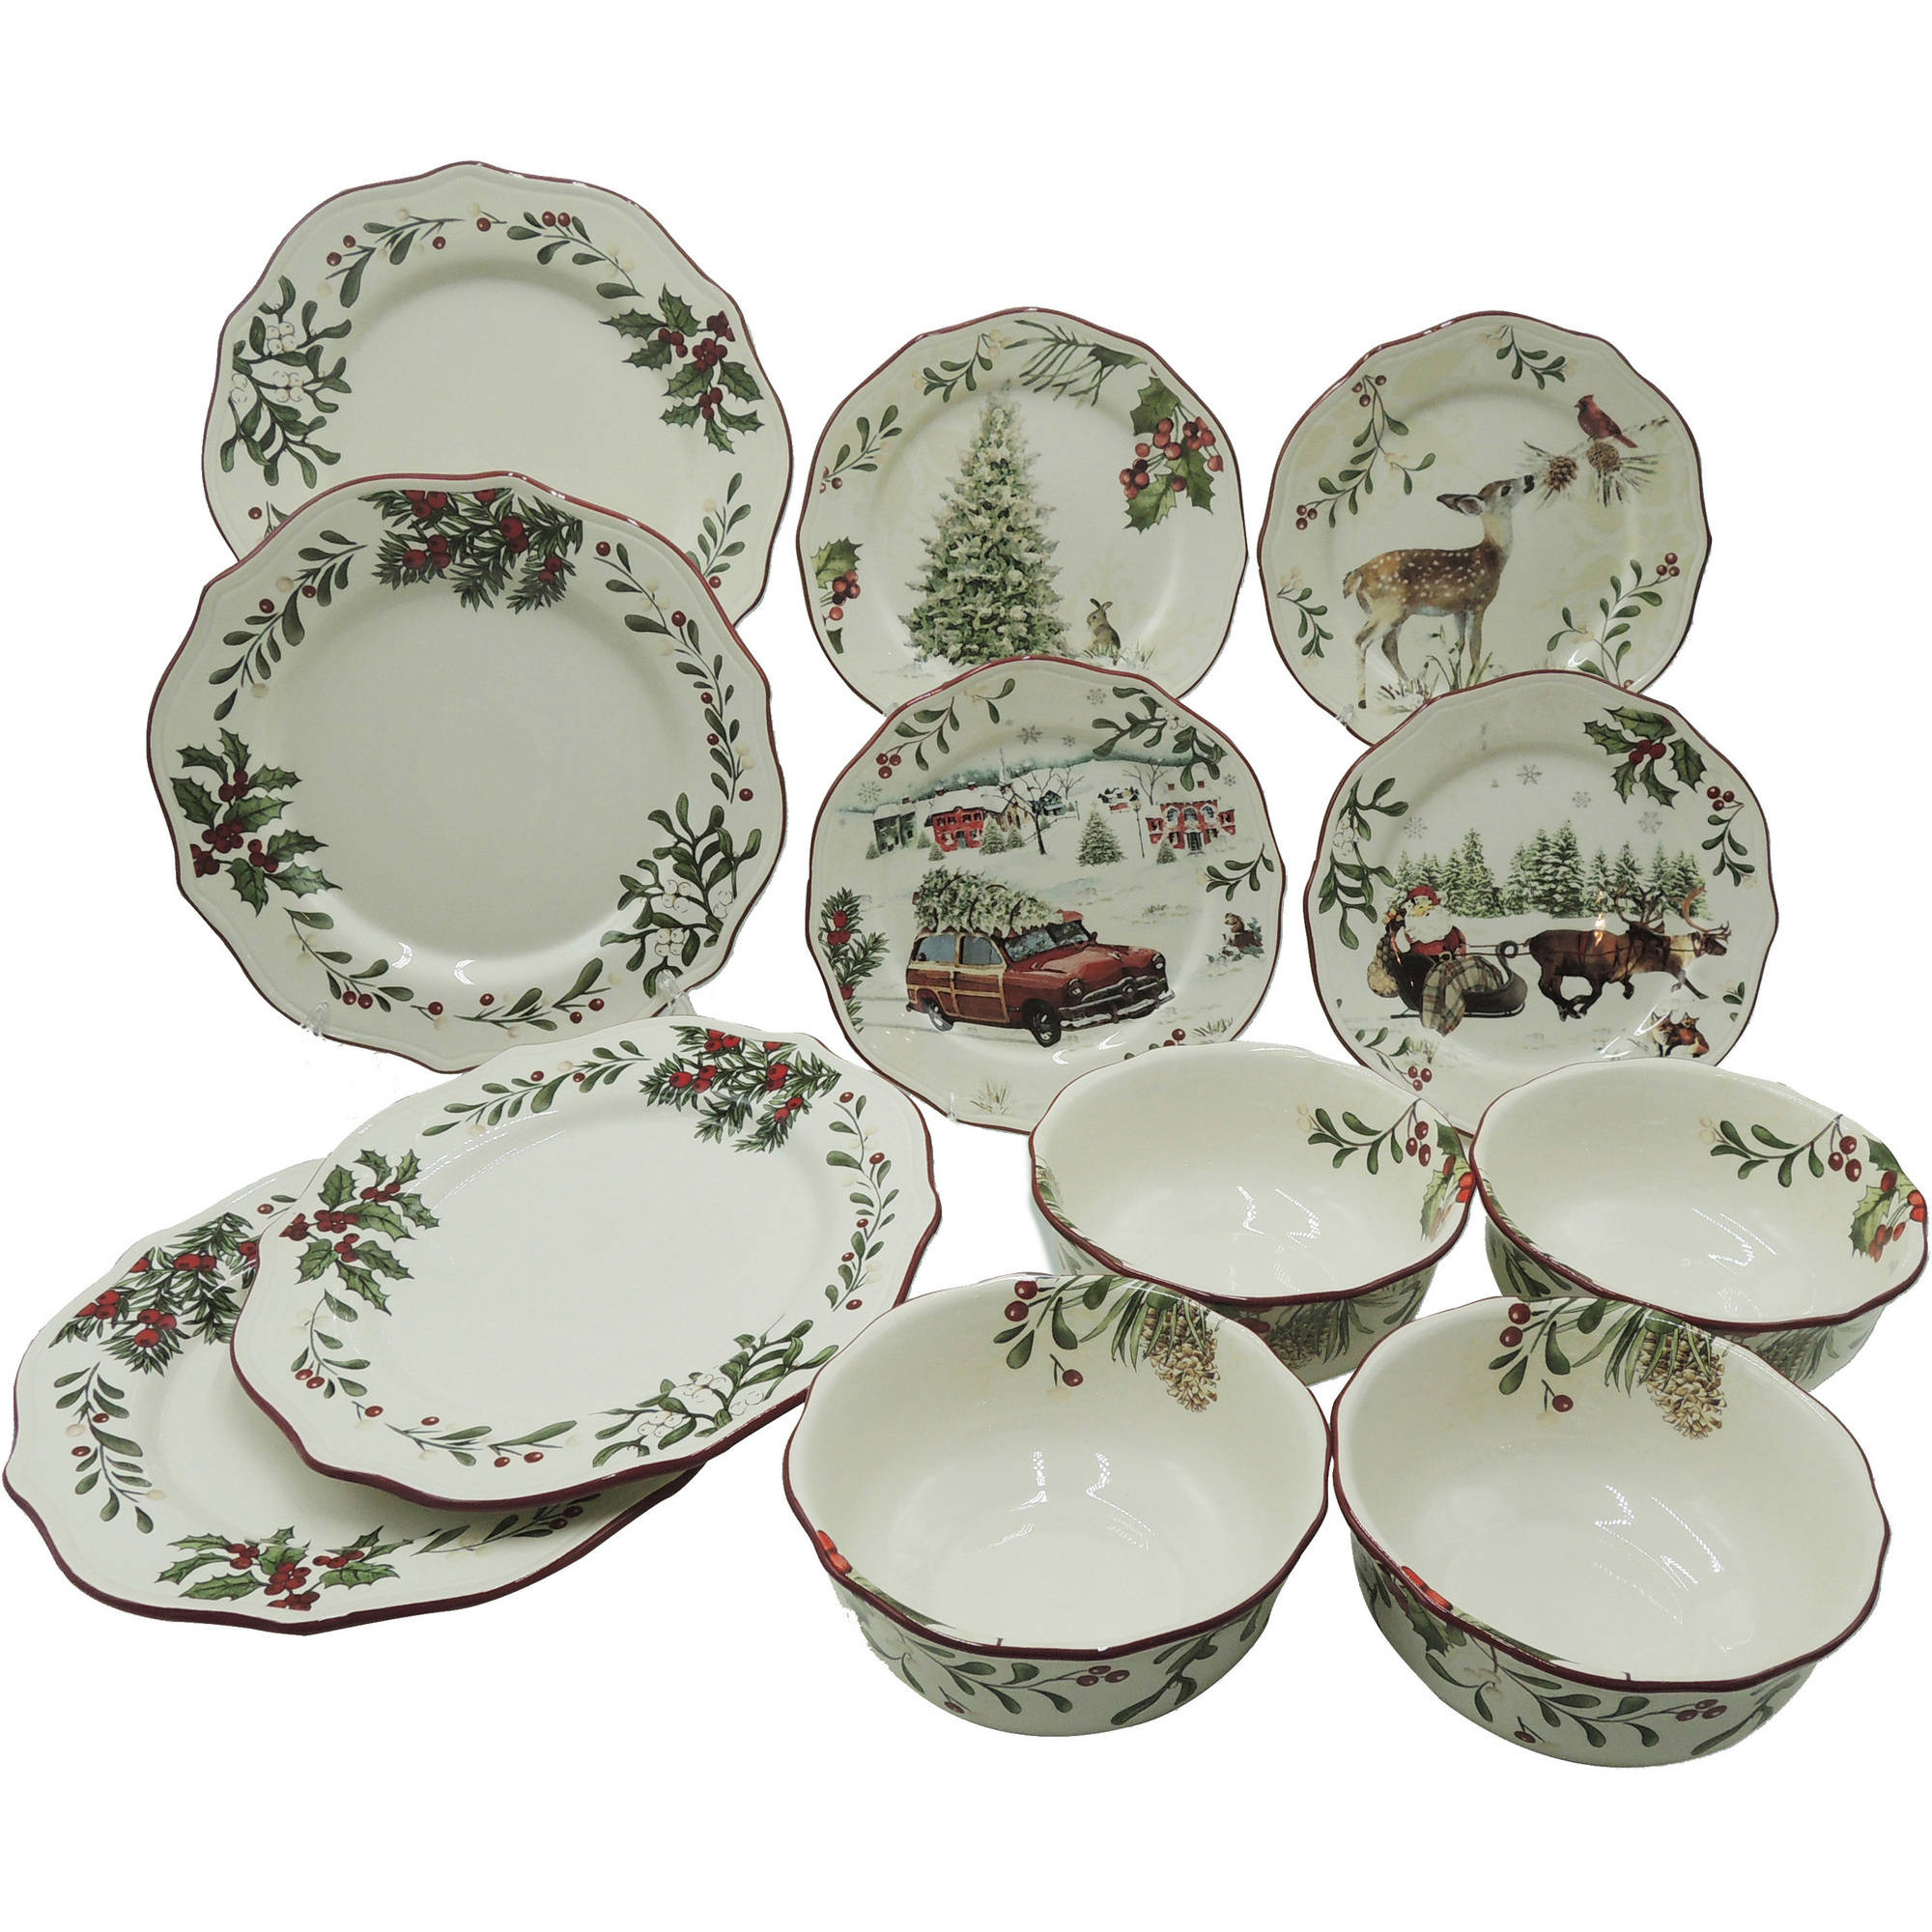 sc 1 st  Walmart & Better Homes and Gardens Heritage 12-Piece Dinnerware Set - Walmart.com